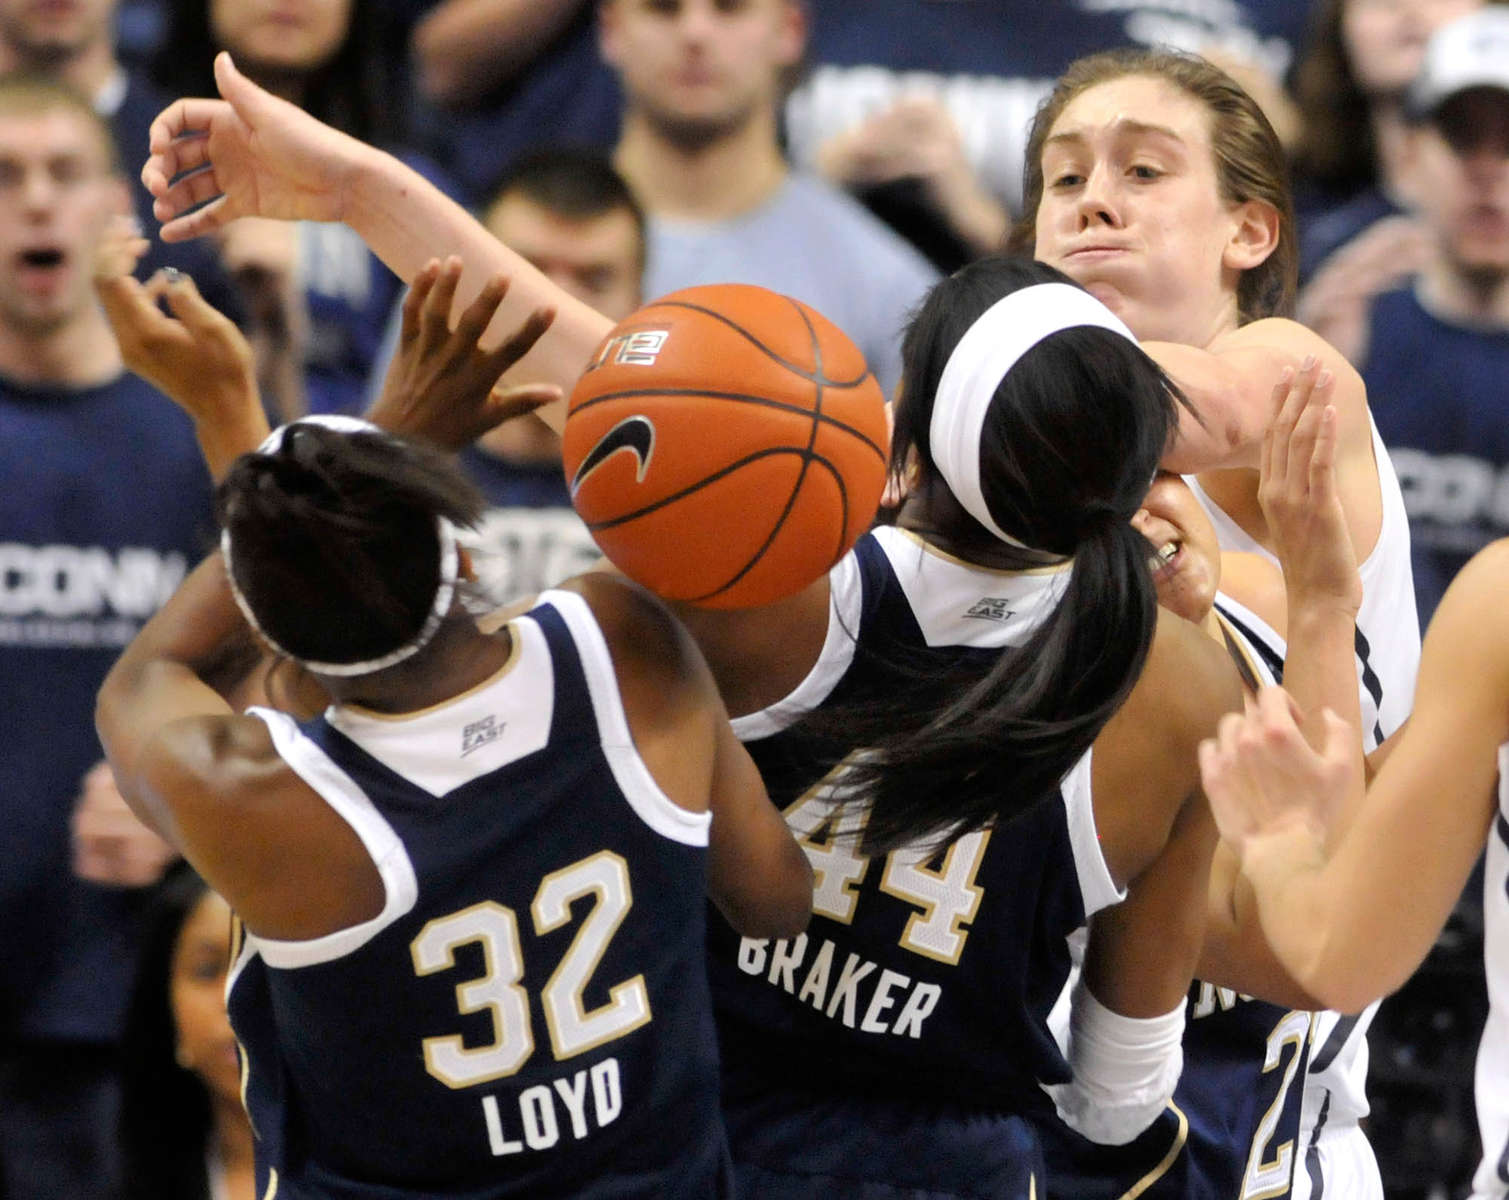 Notre Dame players Jewell Loyd and Ariel Braker battle UConn's Breanna Stewart for a loose ball at Gampel Pavilion.